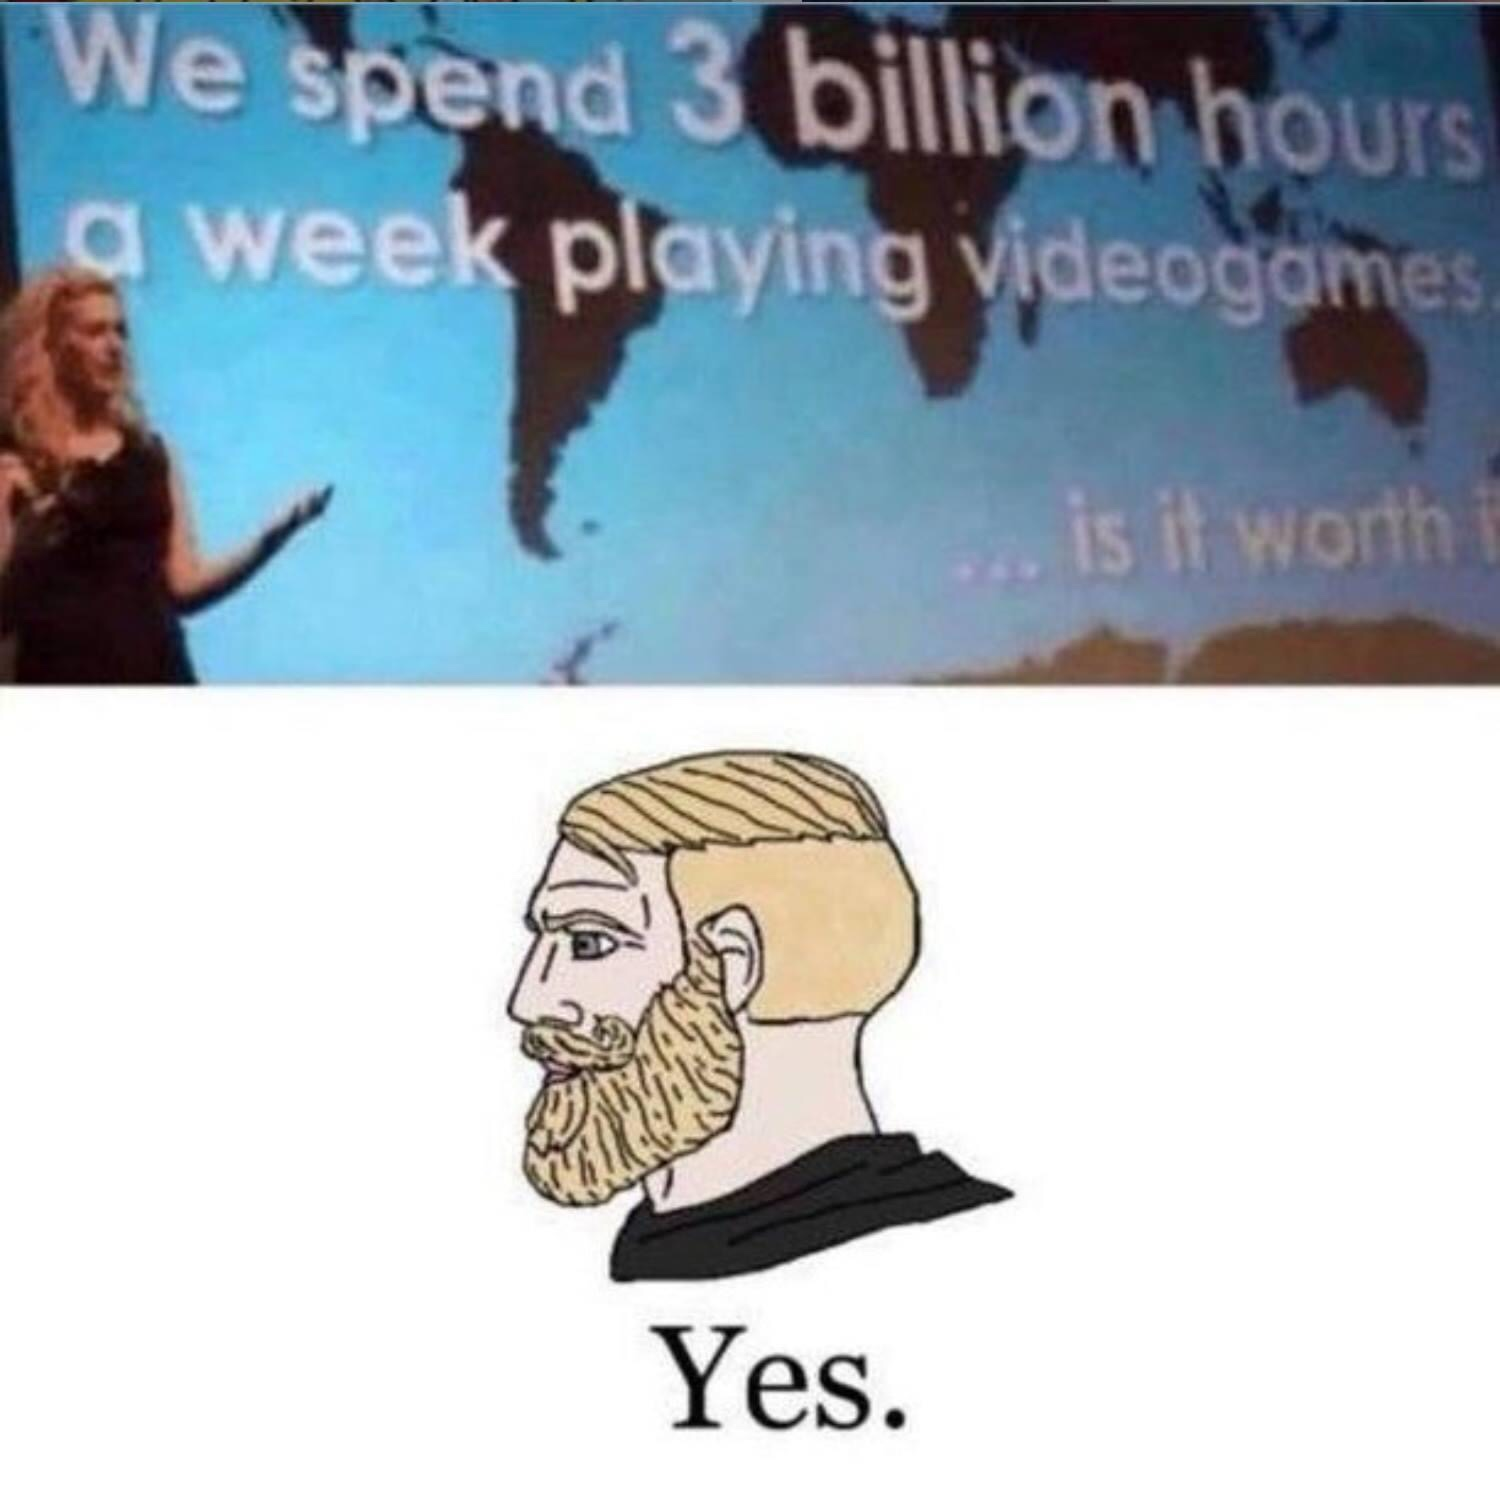 Memes 3 billion hours playing video games